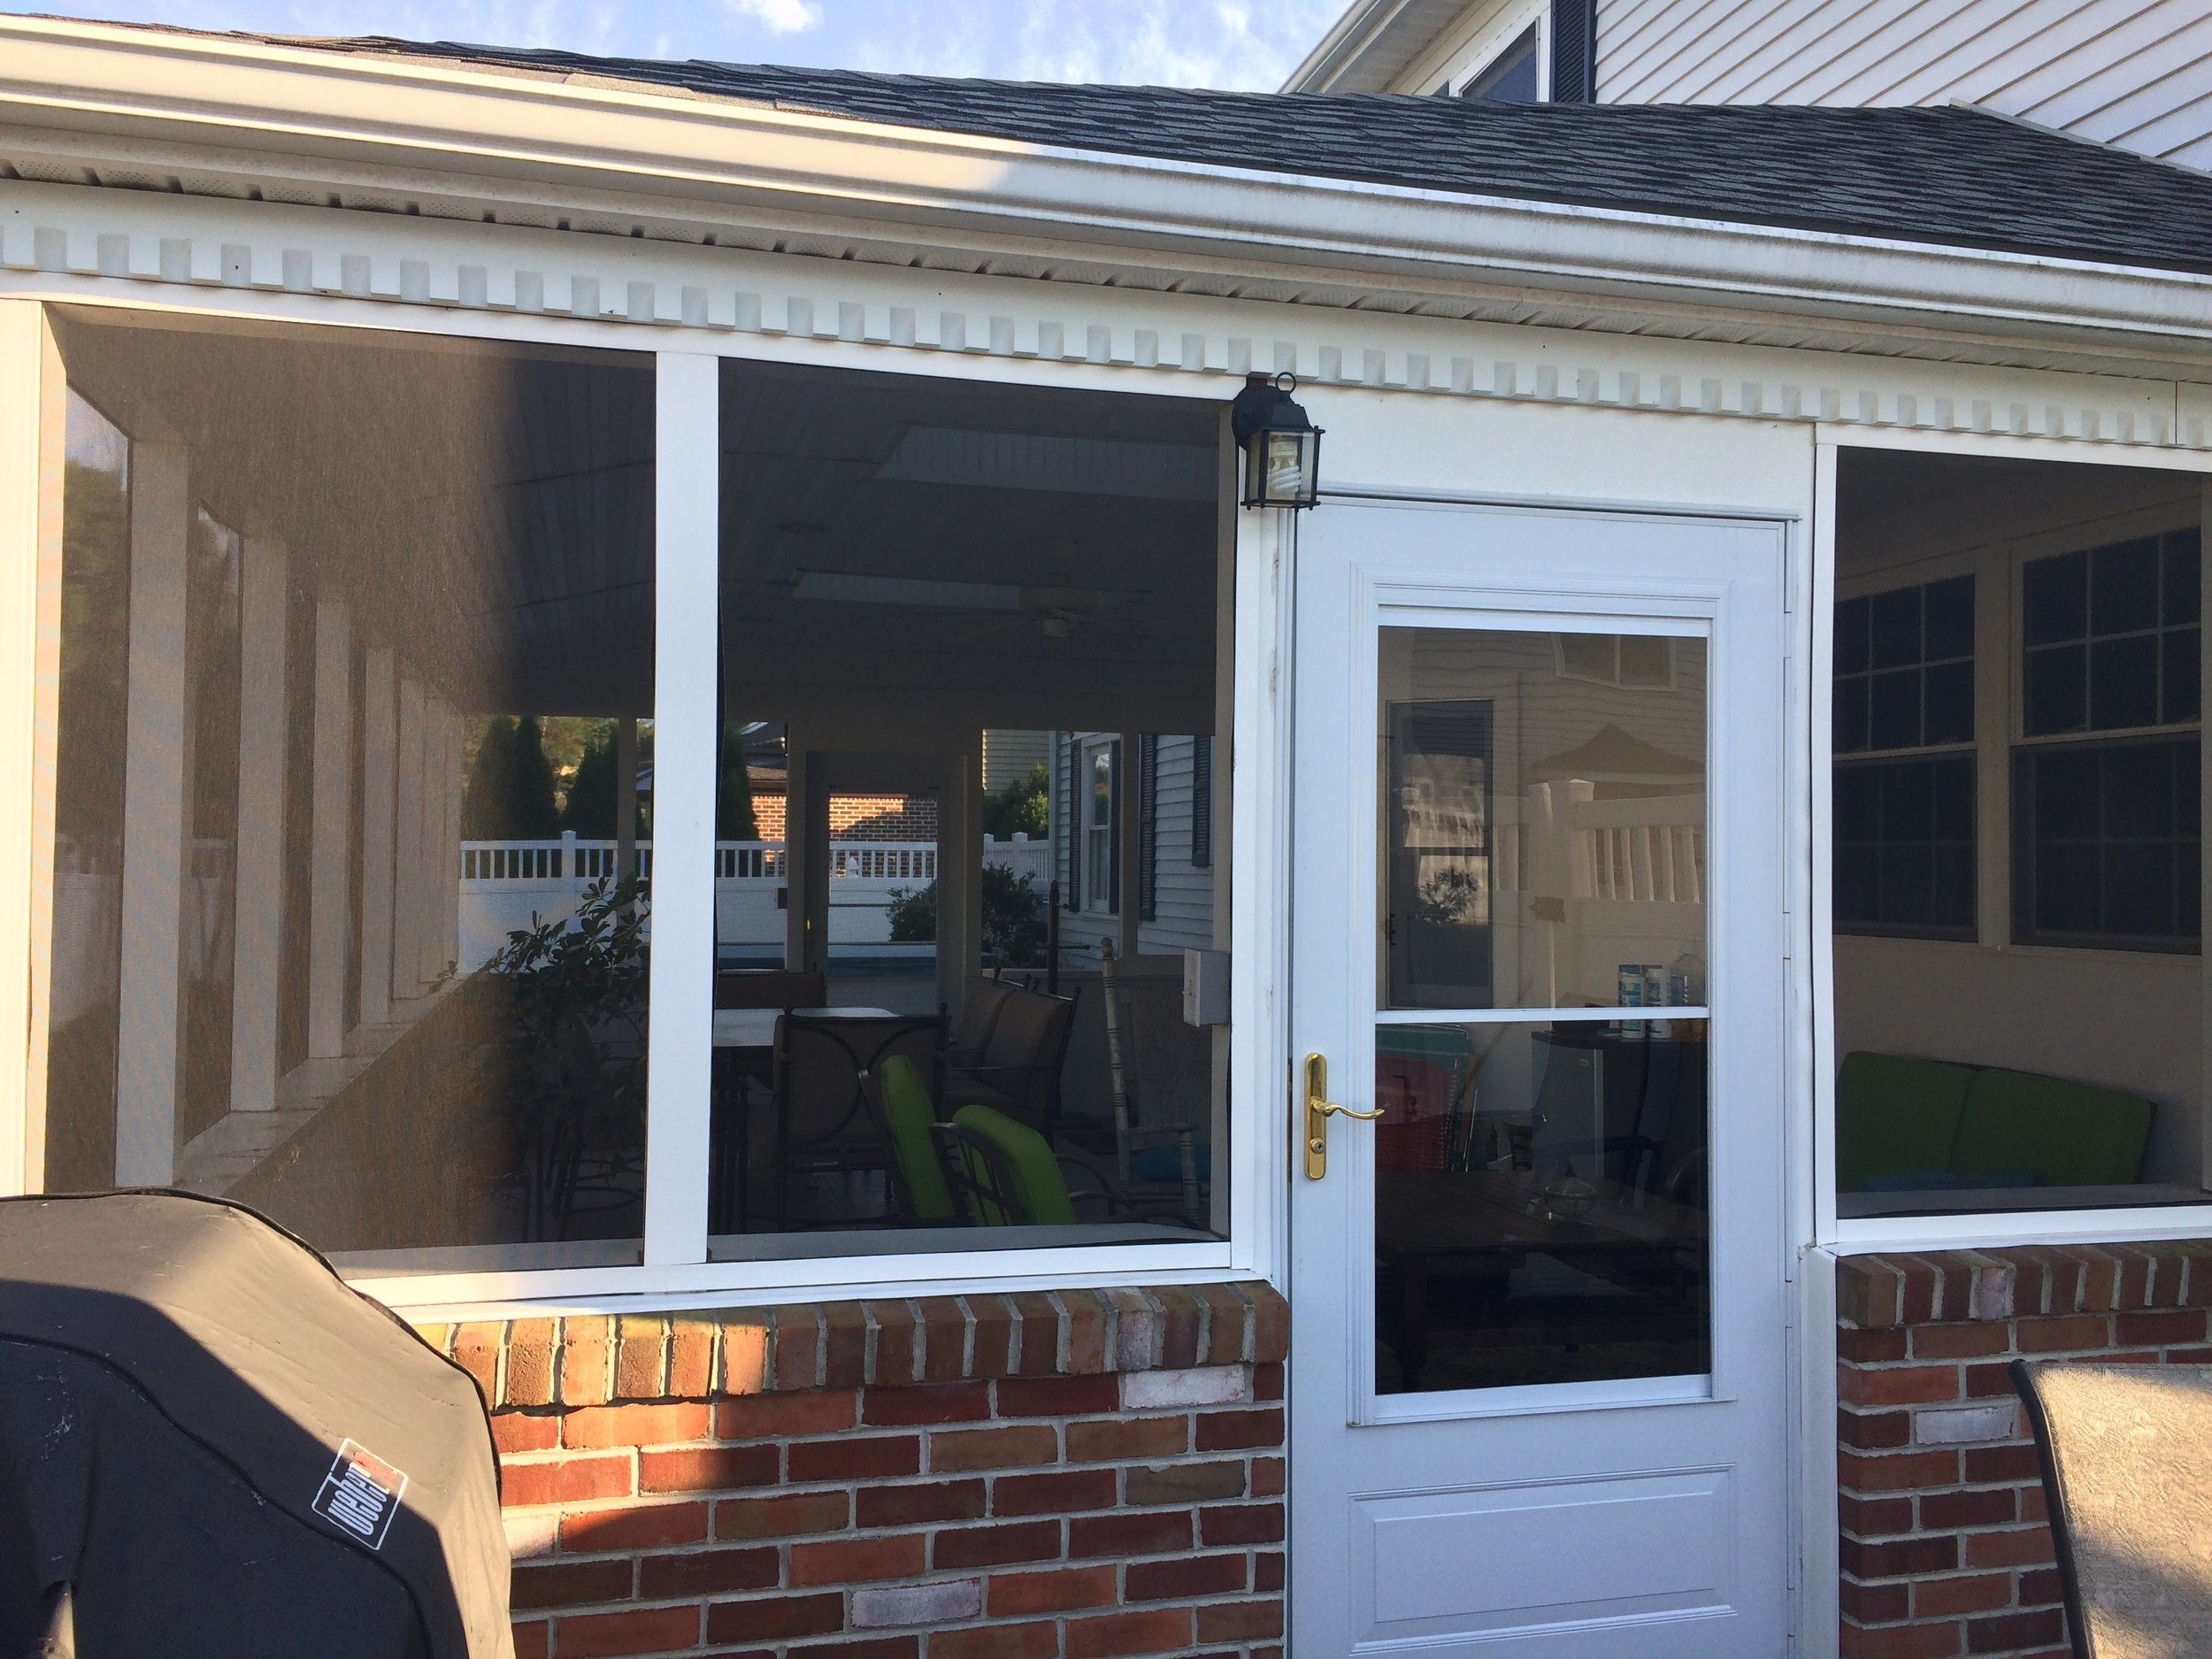 Renue Glass and Screen Repair Backyard Patio